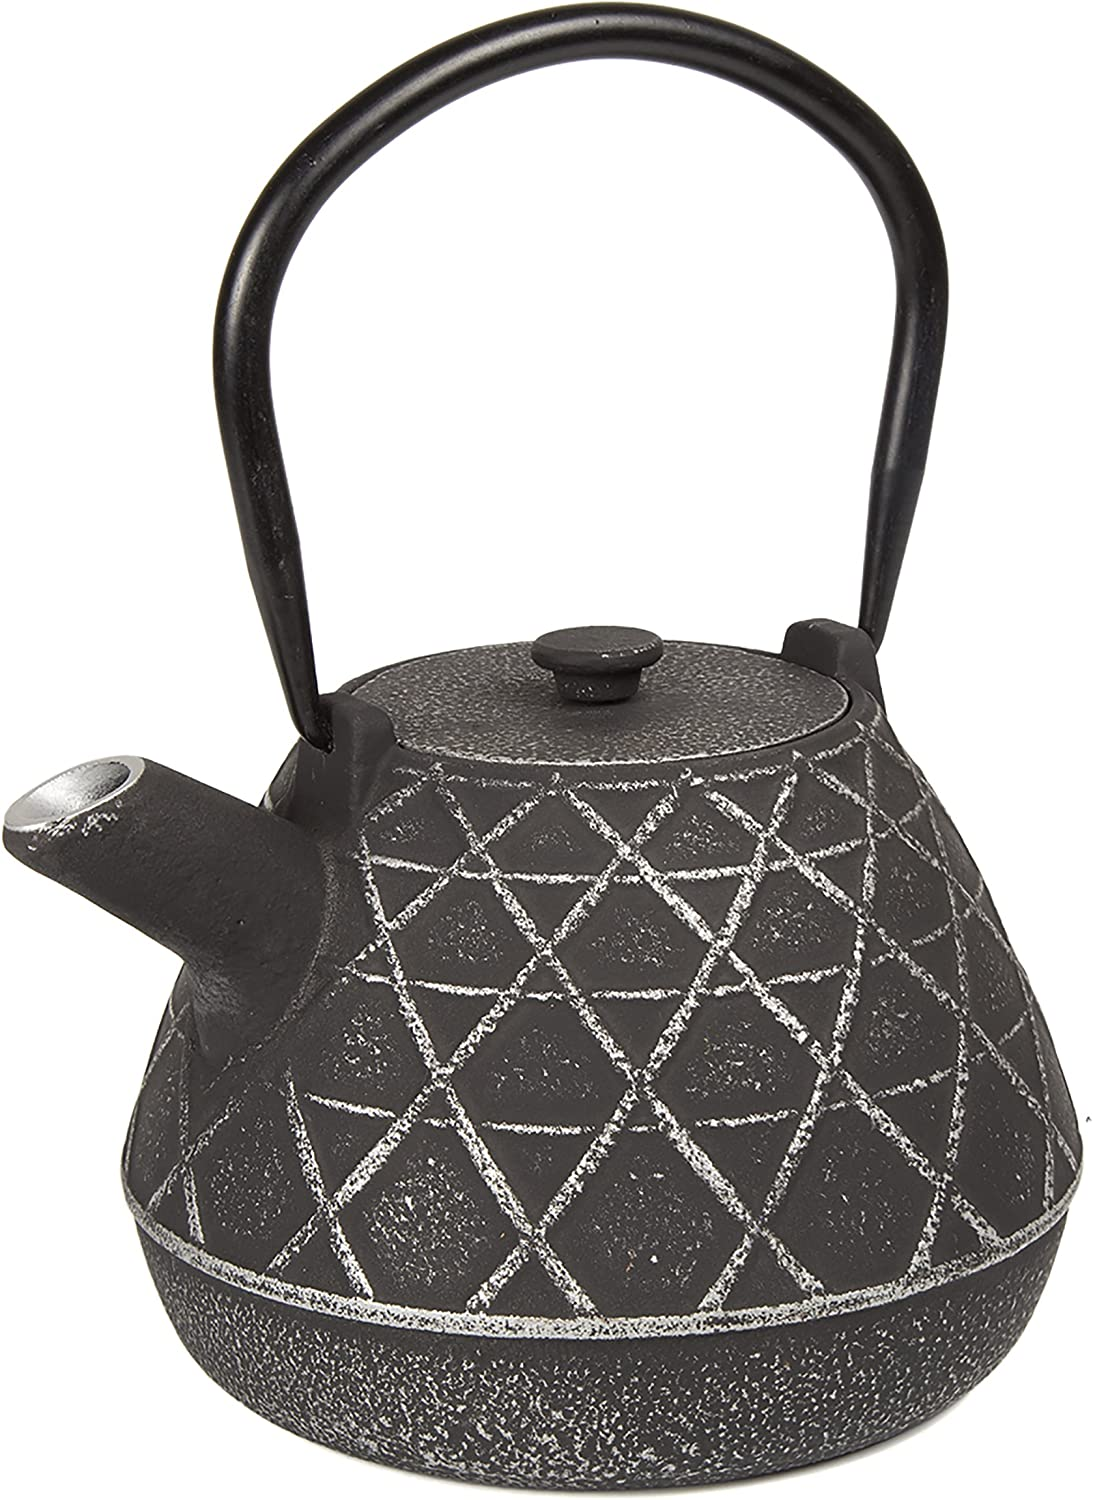 Creative Home Kyusu Cast Iron Tea Pot with Infuser Basket, 34 oz, Silver/Black